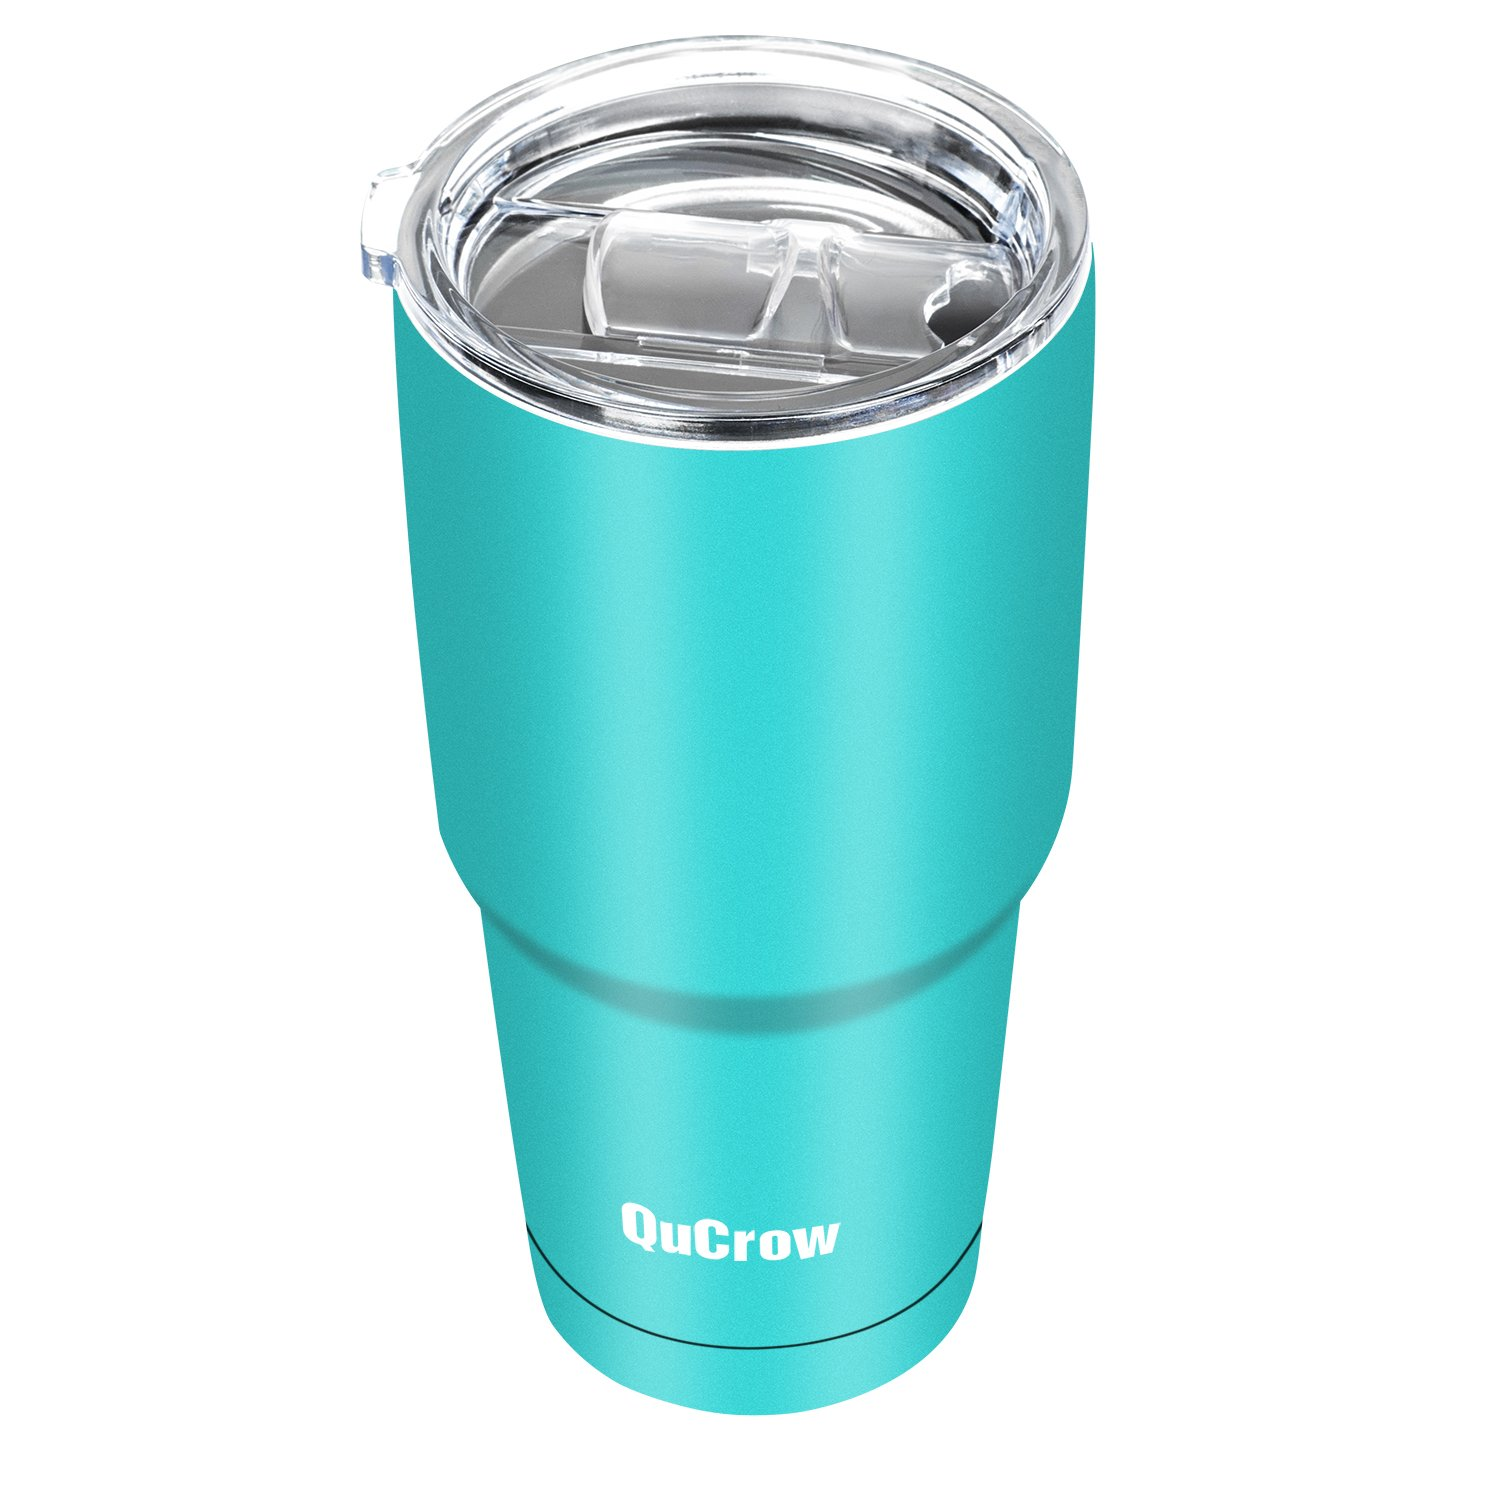 QuCrow 30oz Vacuum Insulated Tumbler- Double Wall Stainless Steel Tumbler with Lid- Coffee Travel Mug- Turquoise